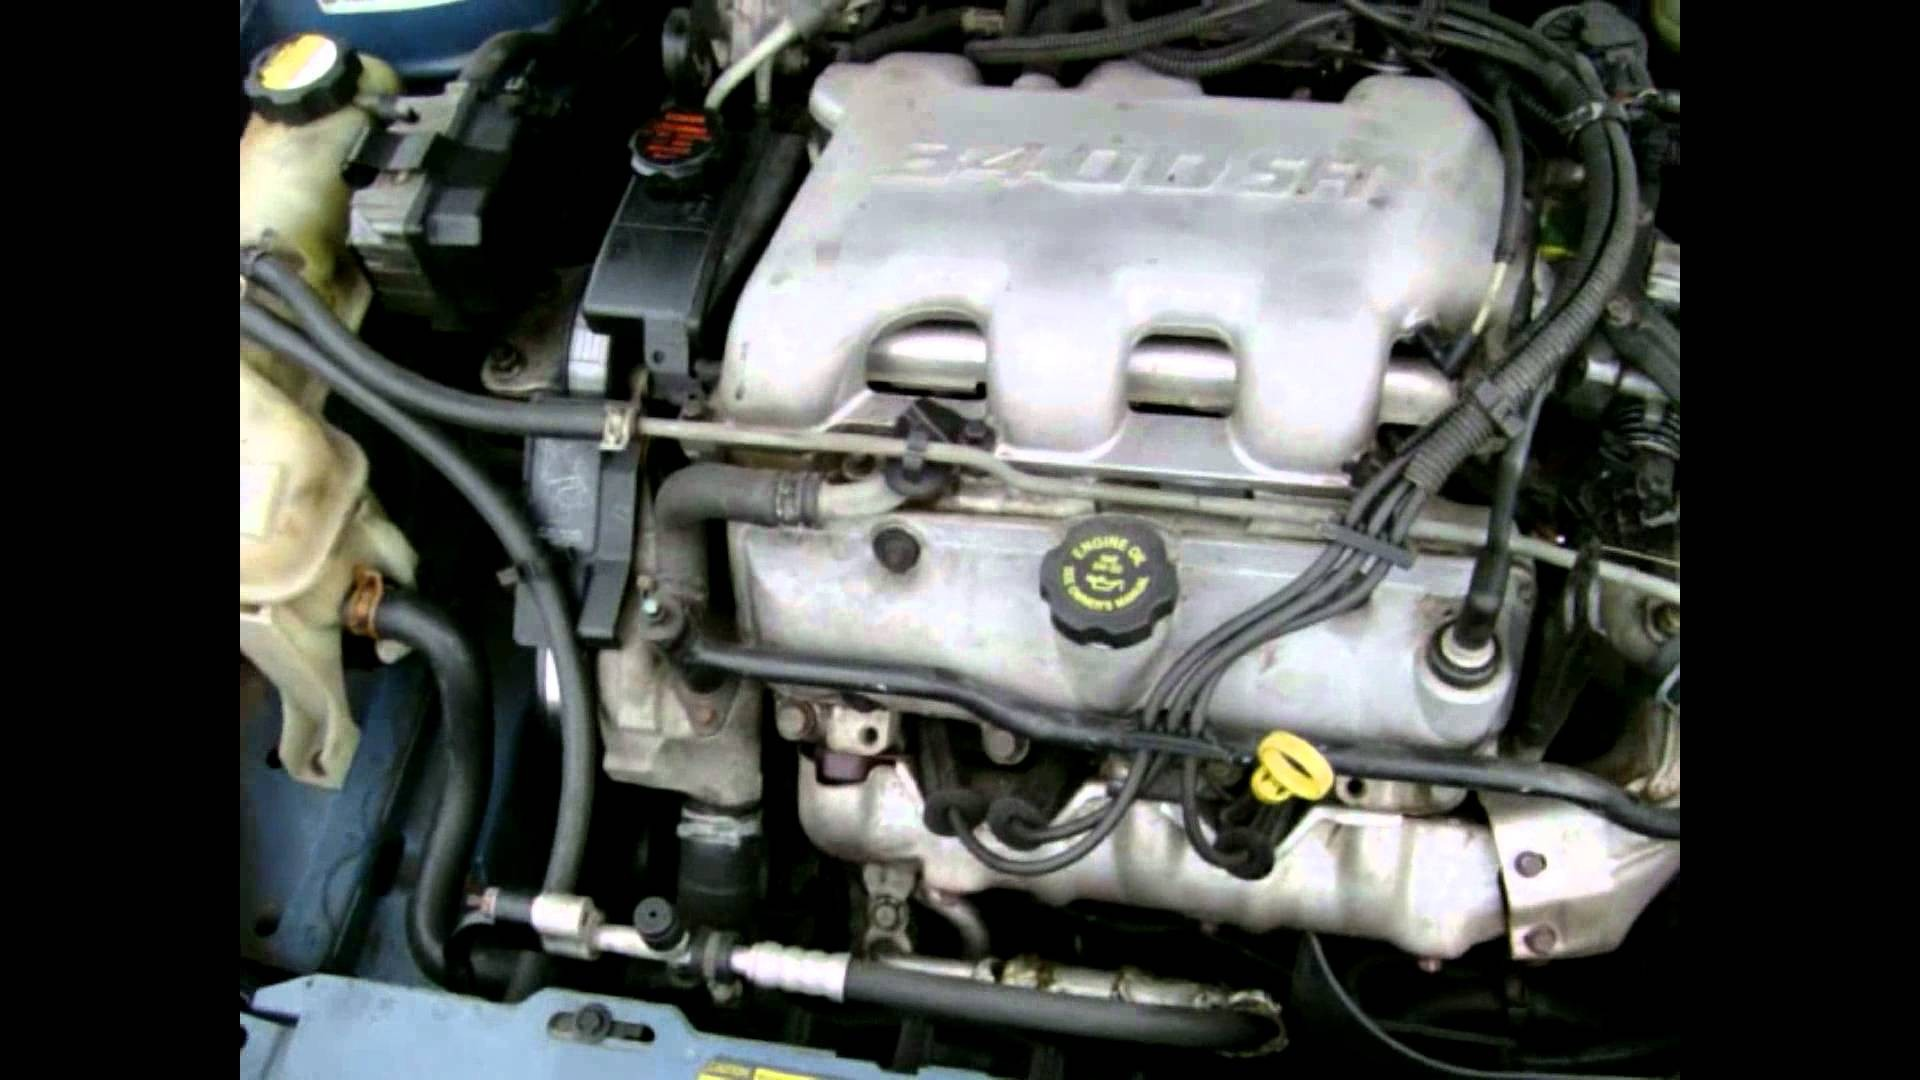 hight resolution of 2001 pontiac aztek engine diagram 3400 gm engine 3 4 liter motor explanation and discussion of